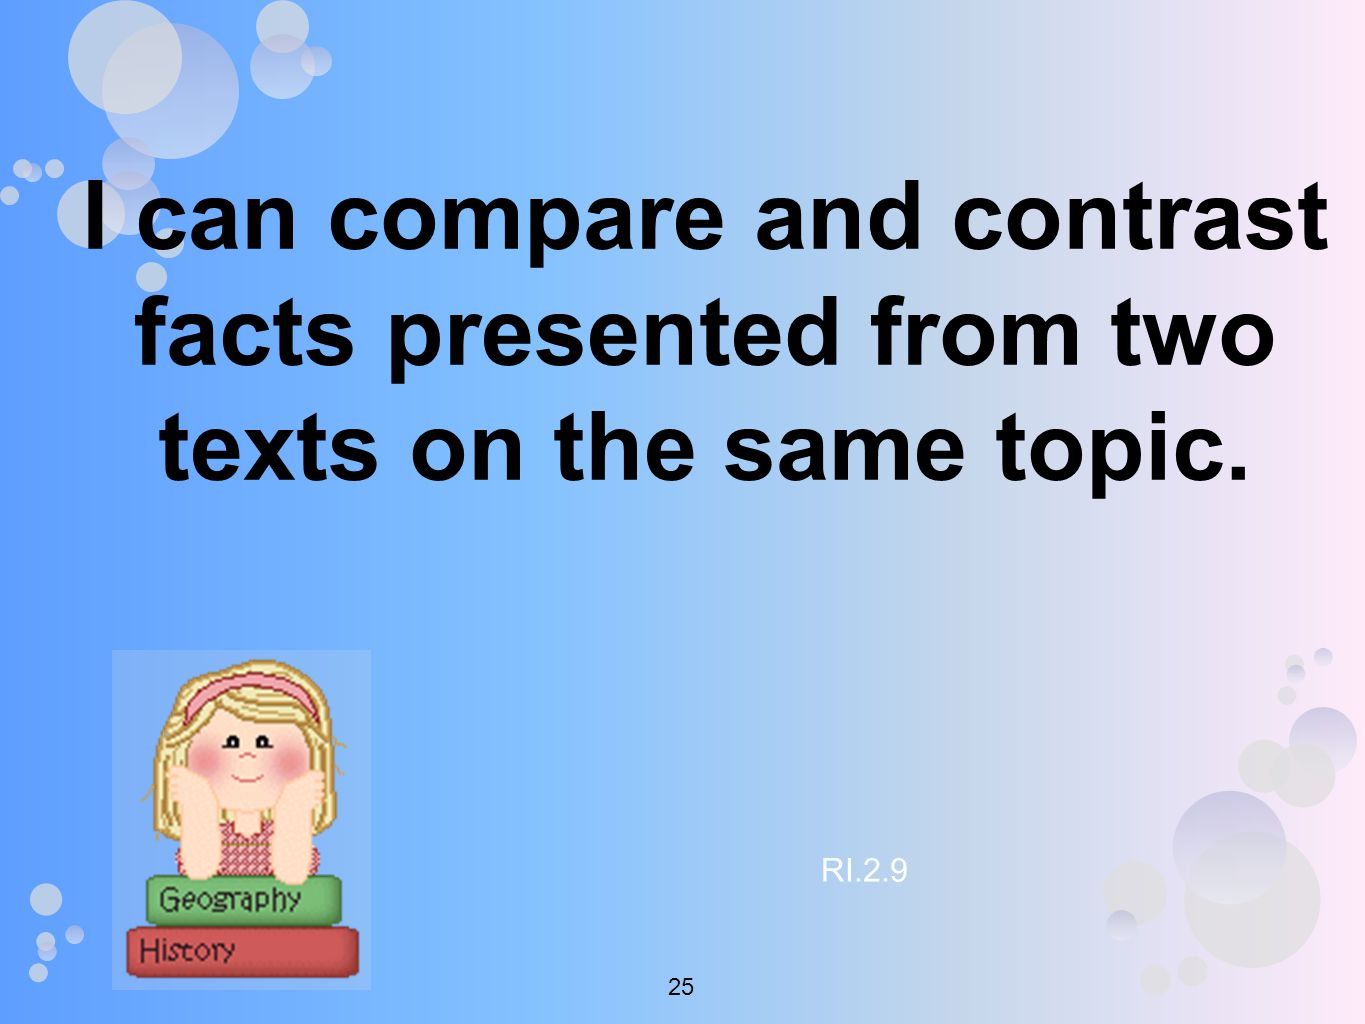 I can compare and contrast facts presented from two texts on the same topic. RI